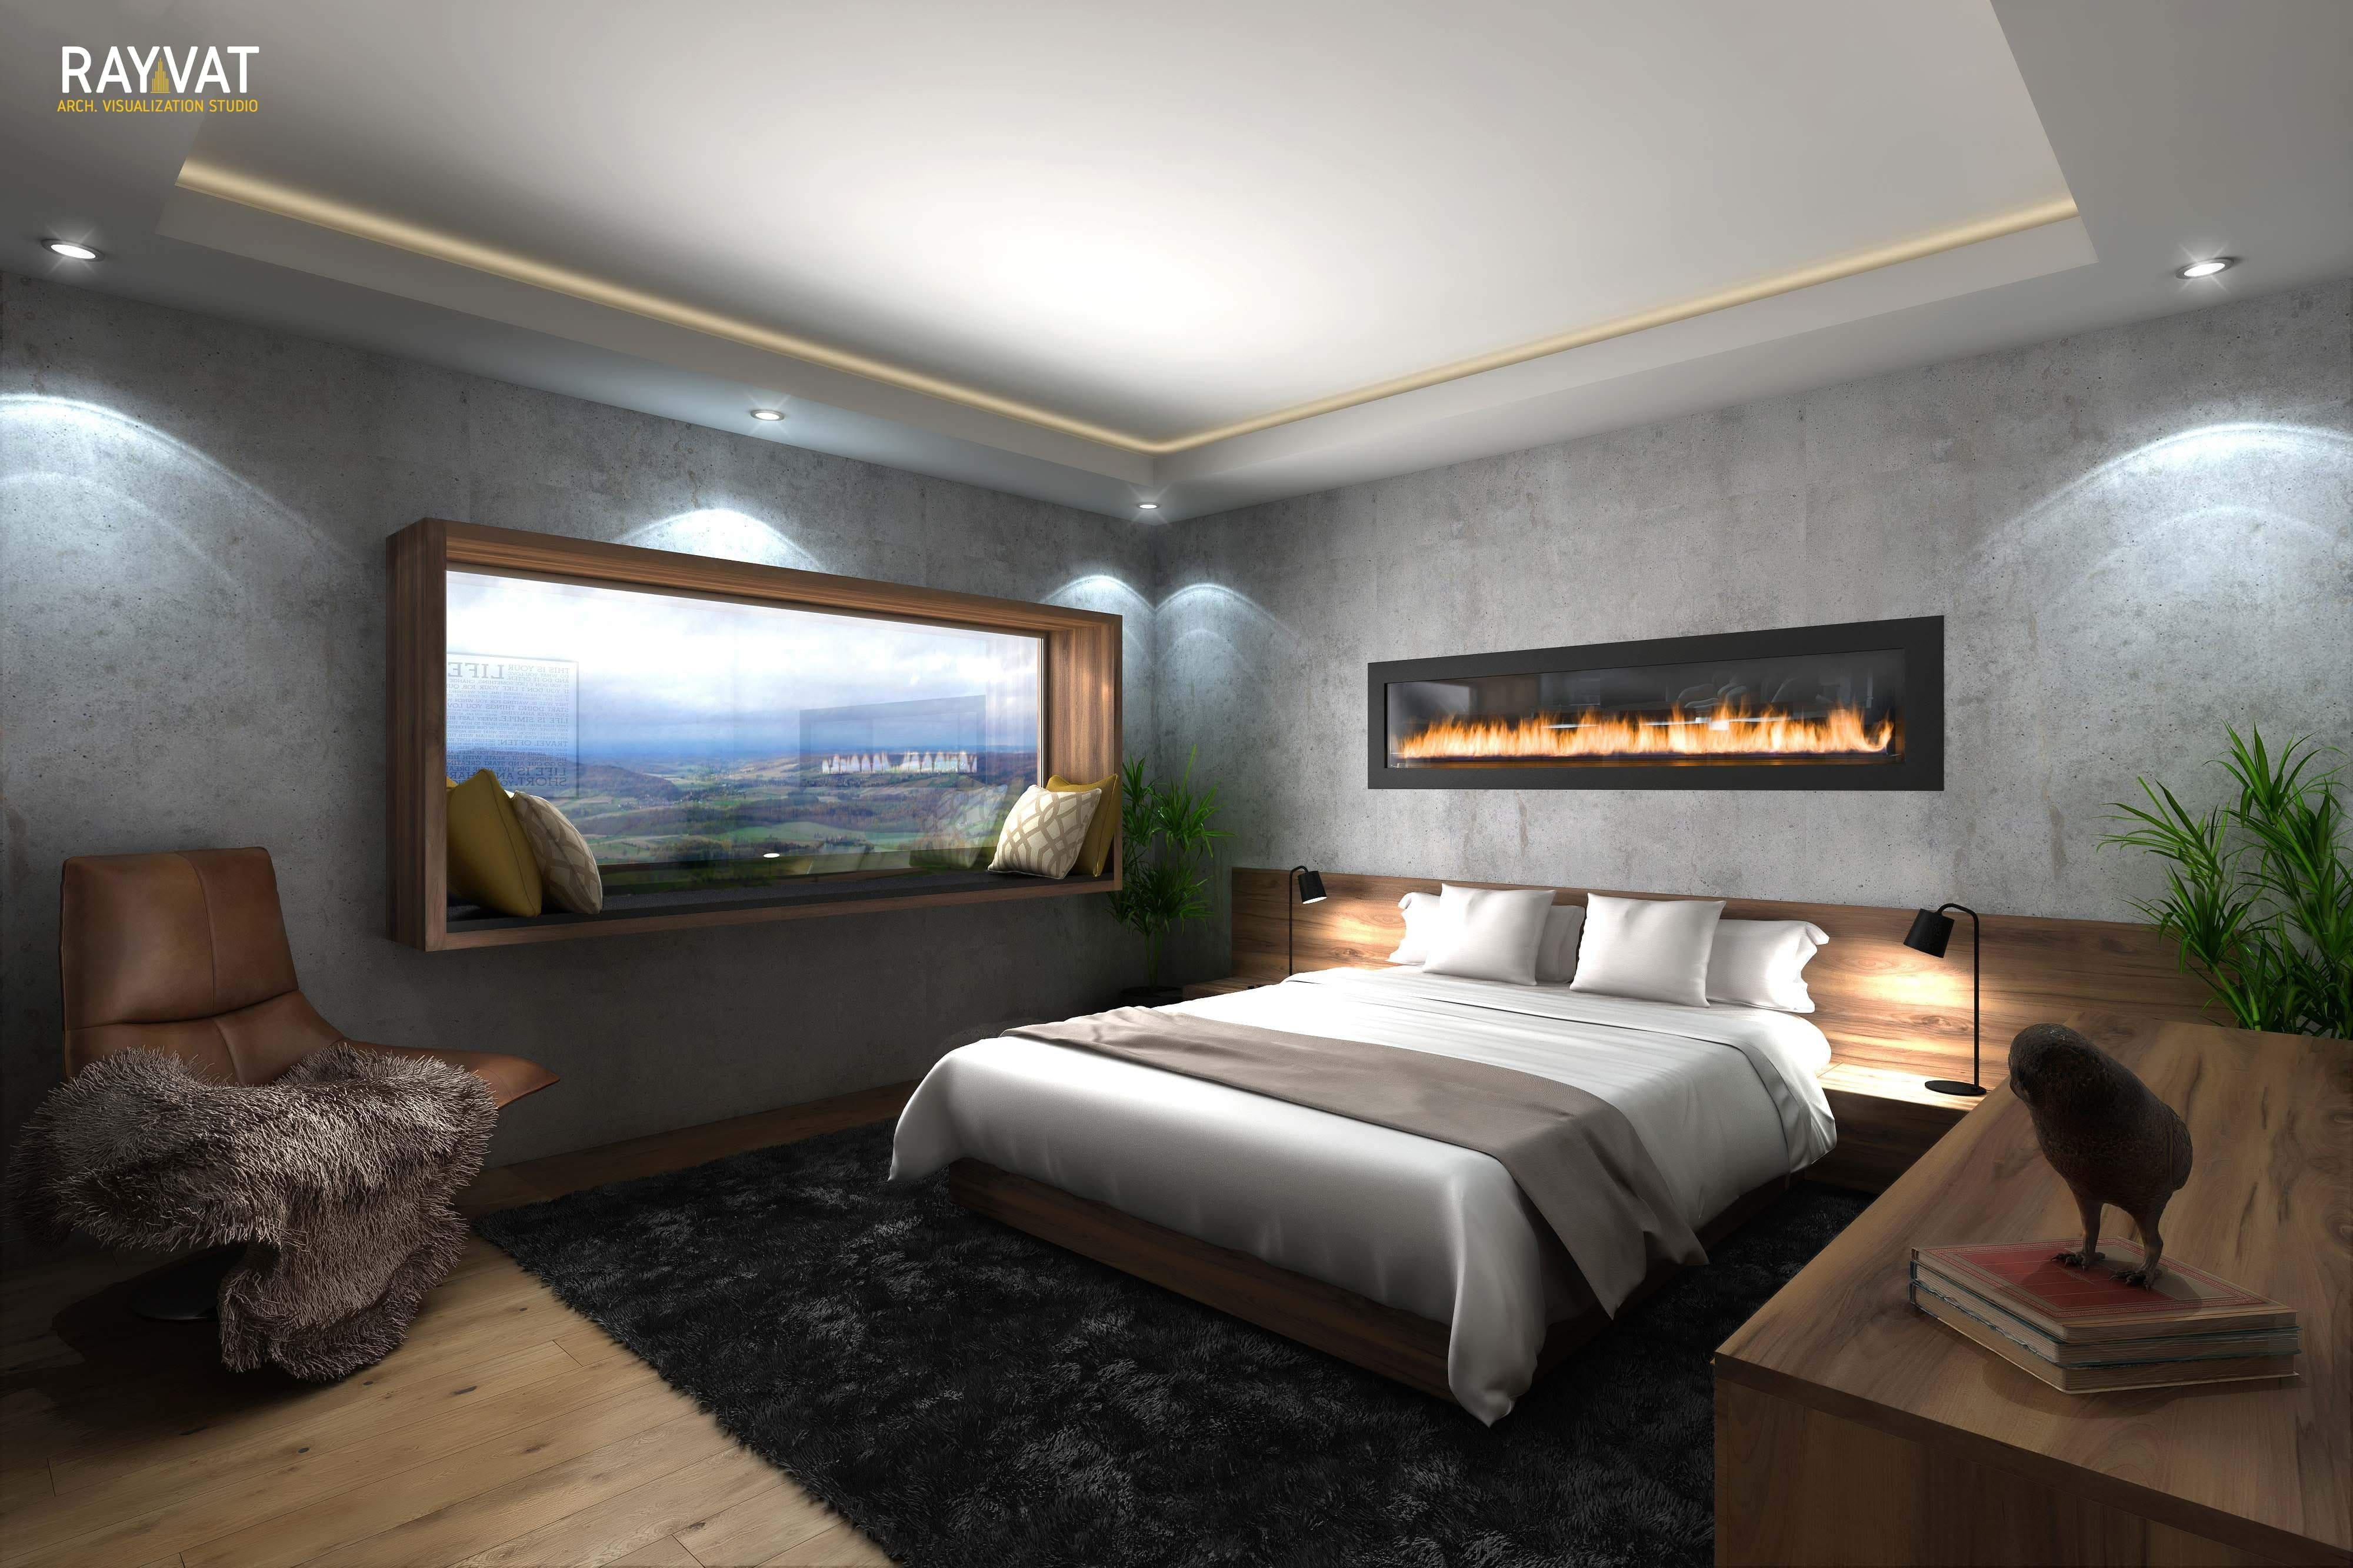 Mid Century Modern Bedroom New 3d Rendering Of A Quirky Mid Century and Nature Inspired